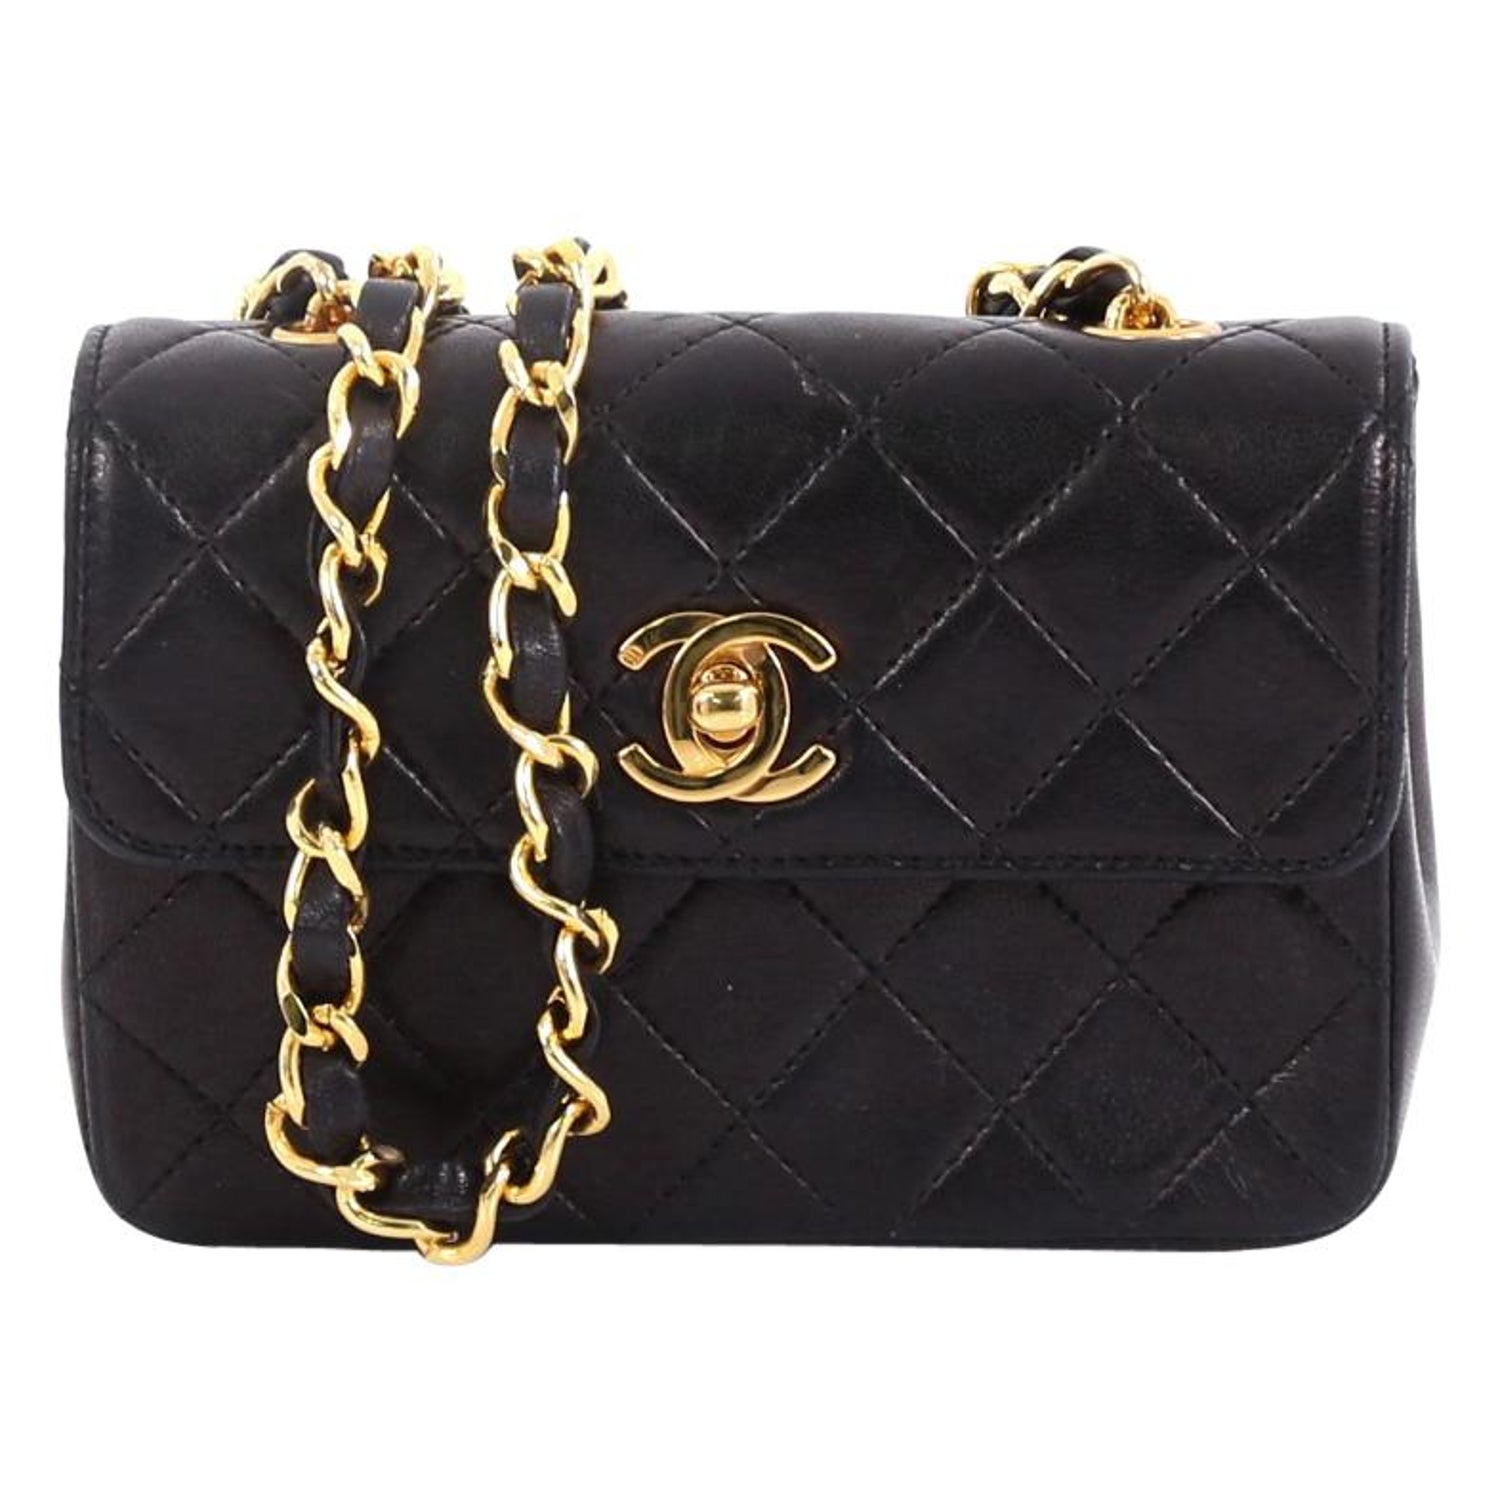 68ffc12d24a8 Chanel Vintage CC Chain Flap Bag Quilted Leather Extra Mini at 1stdibs